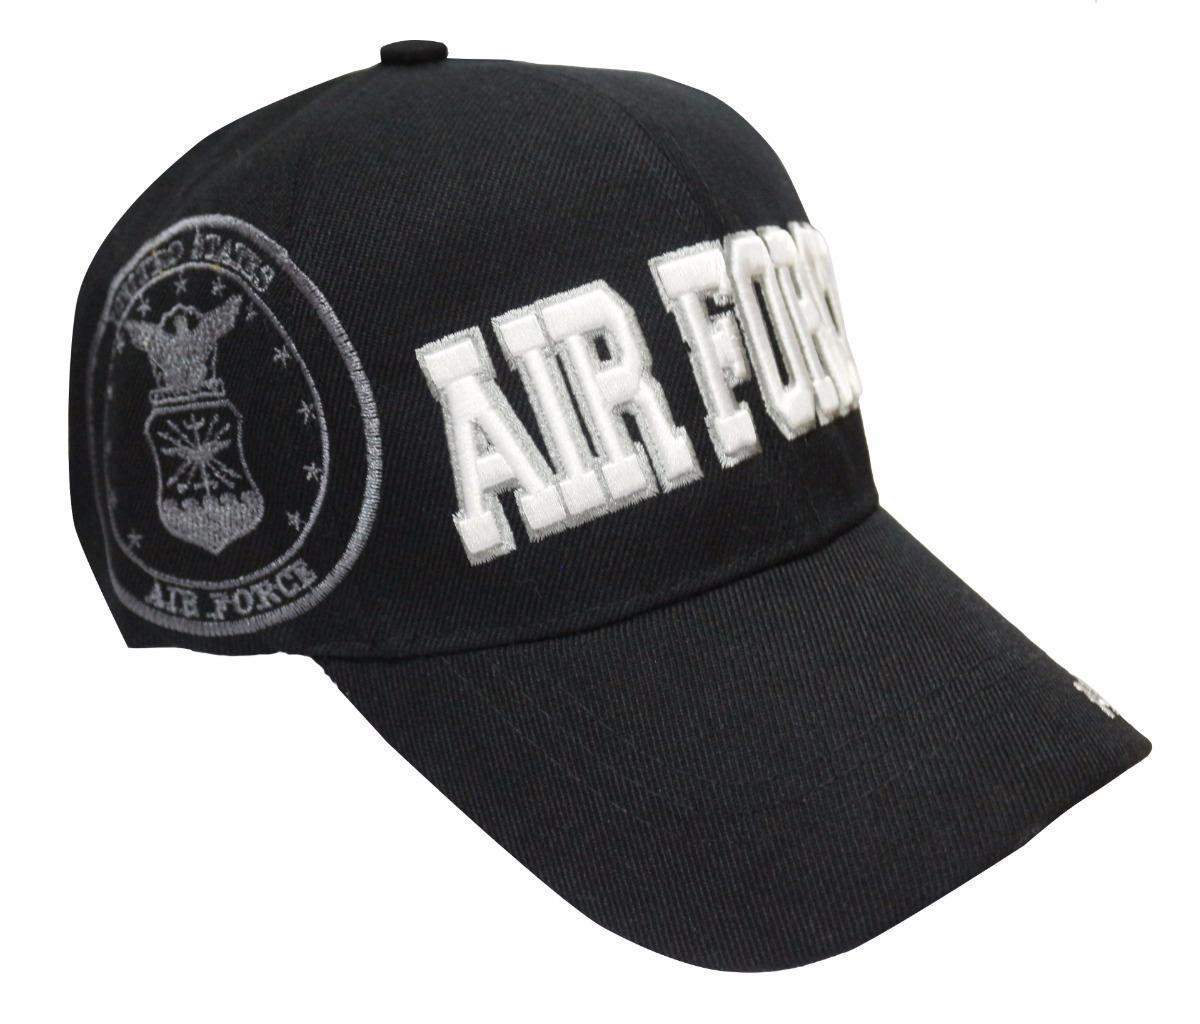 NEW PREMIUM UNISEX AIR FORCE OFFICIAL ADJUSTABLE BASEBALL HAT CAP BLACK ONE SIZE